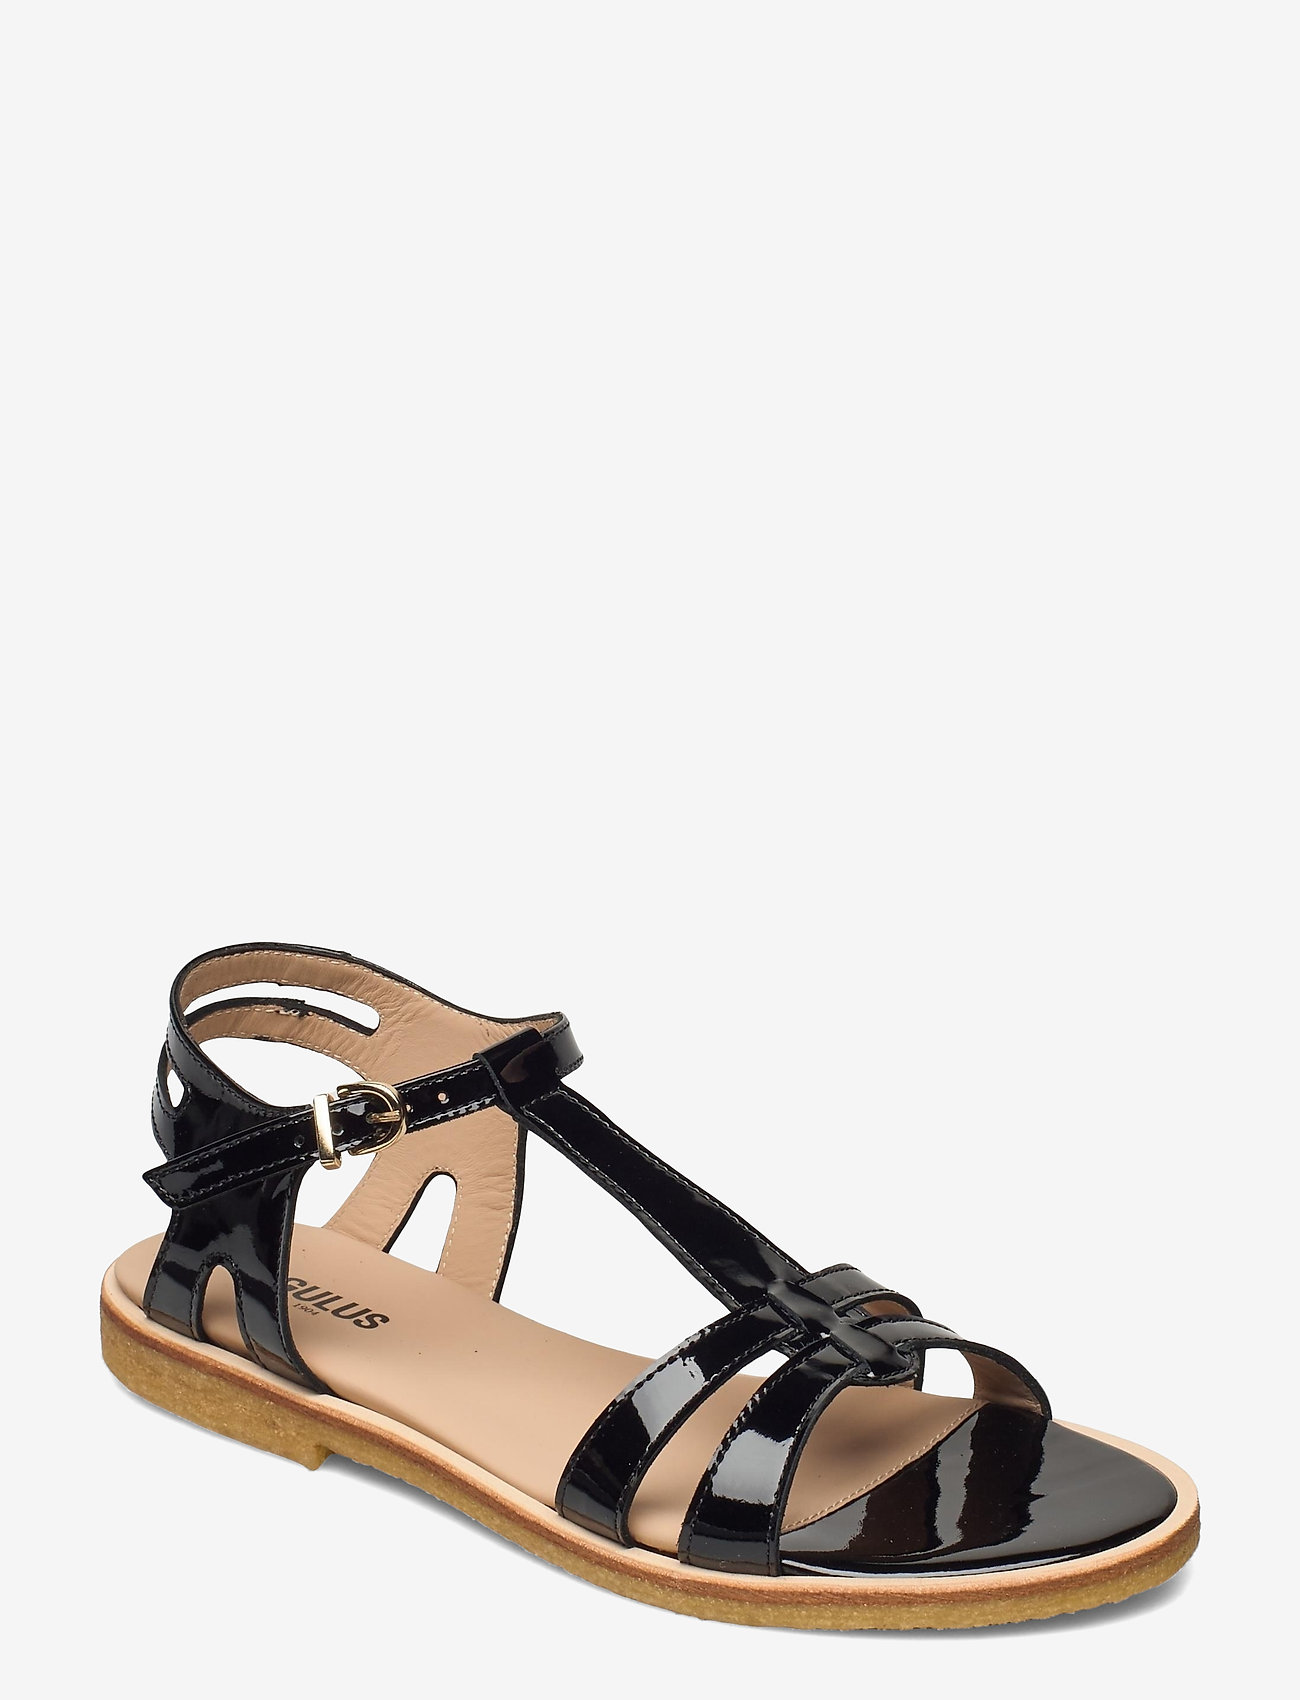 ANGULUS - Sandal with leather sole - flache sandalen - 2320 black - 0